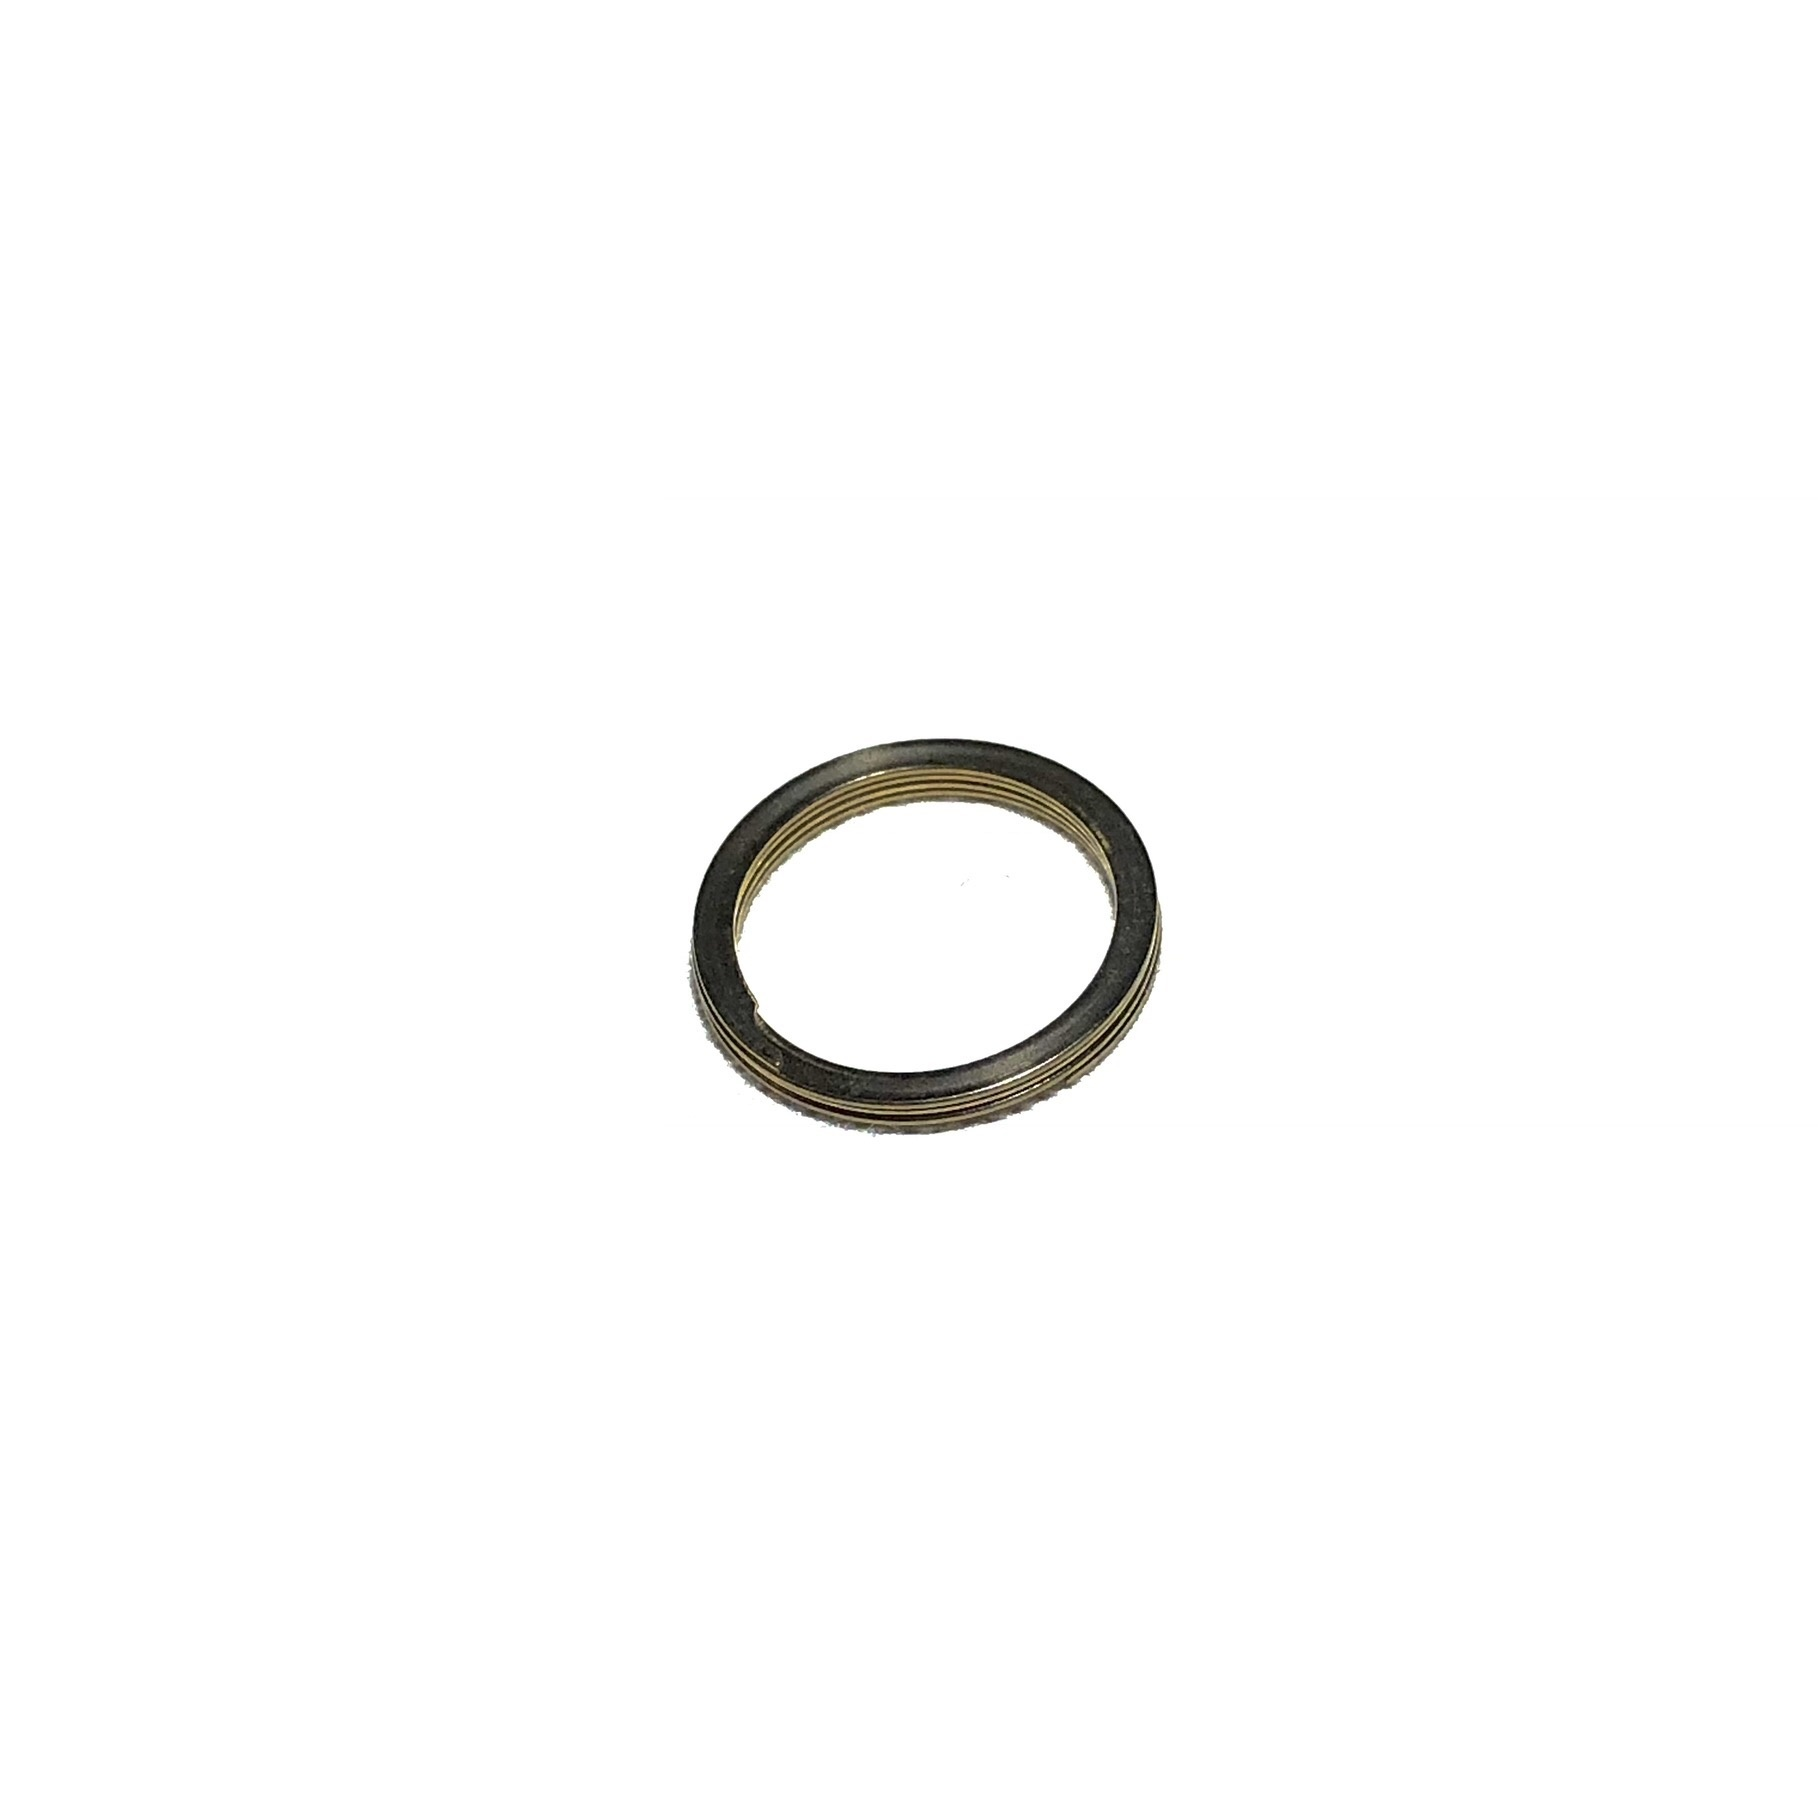 BLACK MARKET FIREARMS ONE-PIECE HELICAL GAS RING